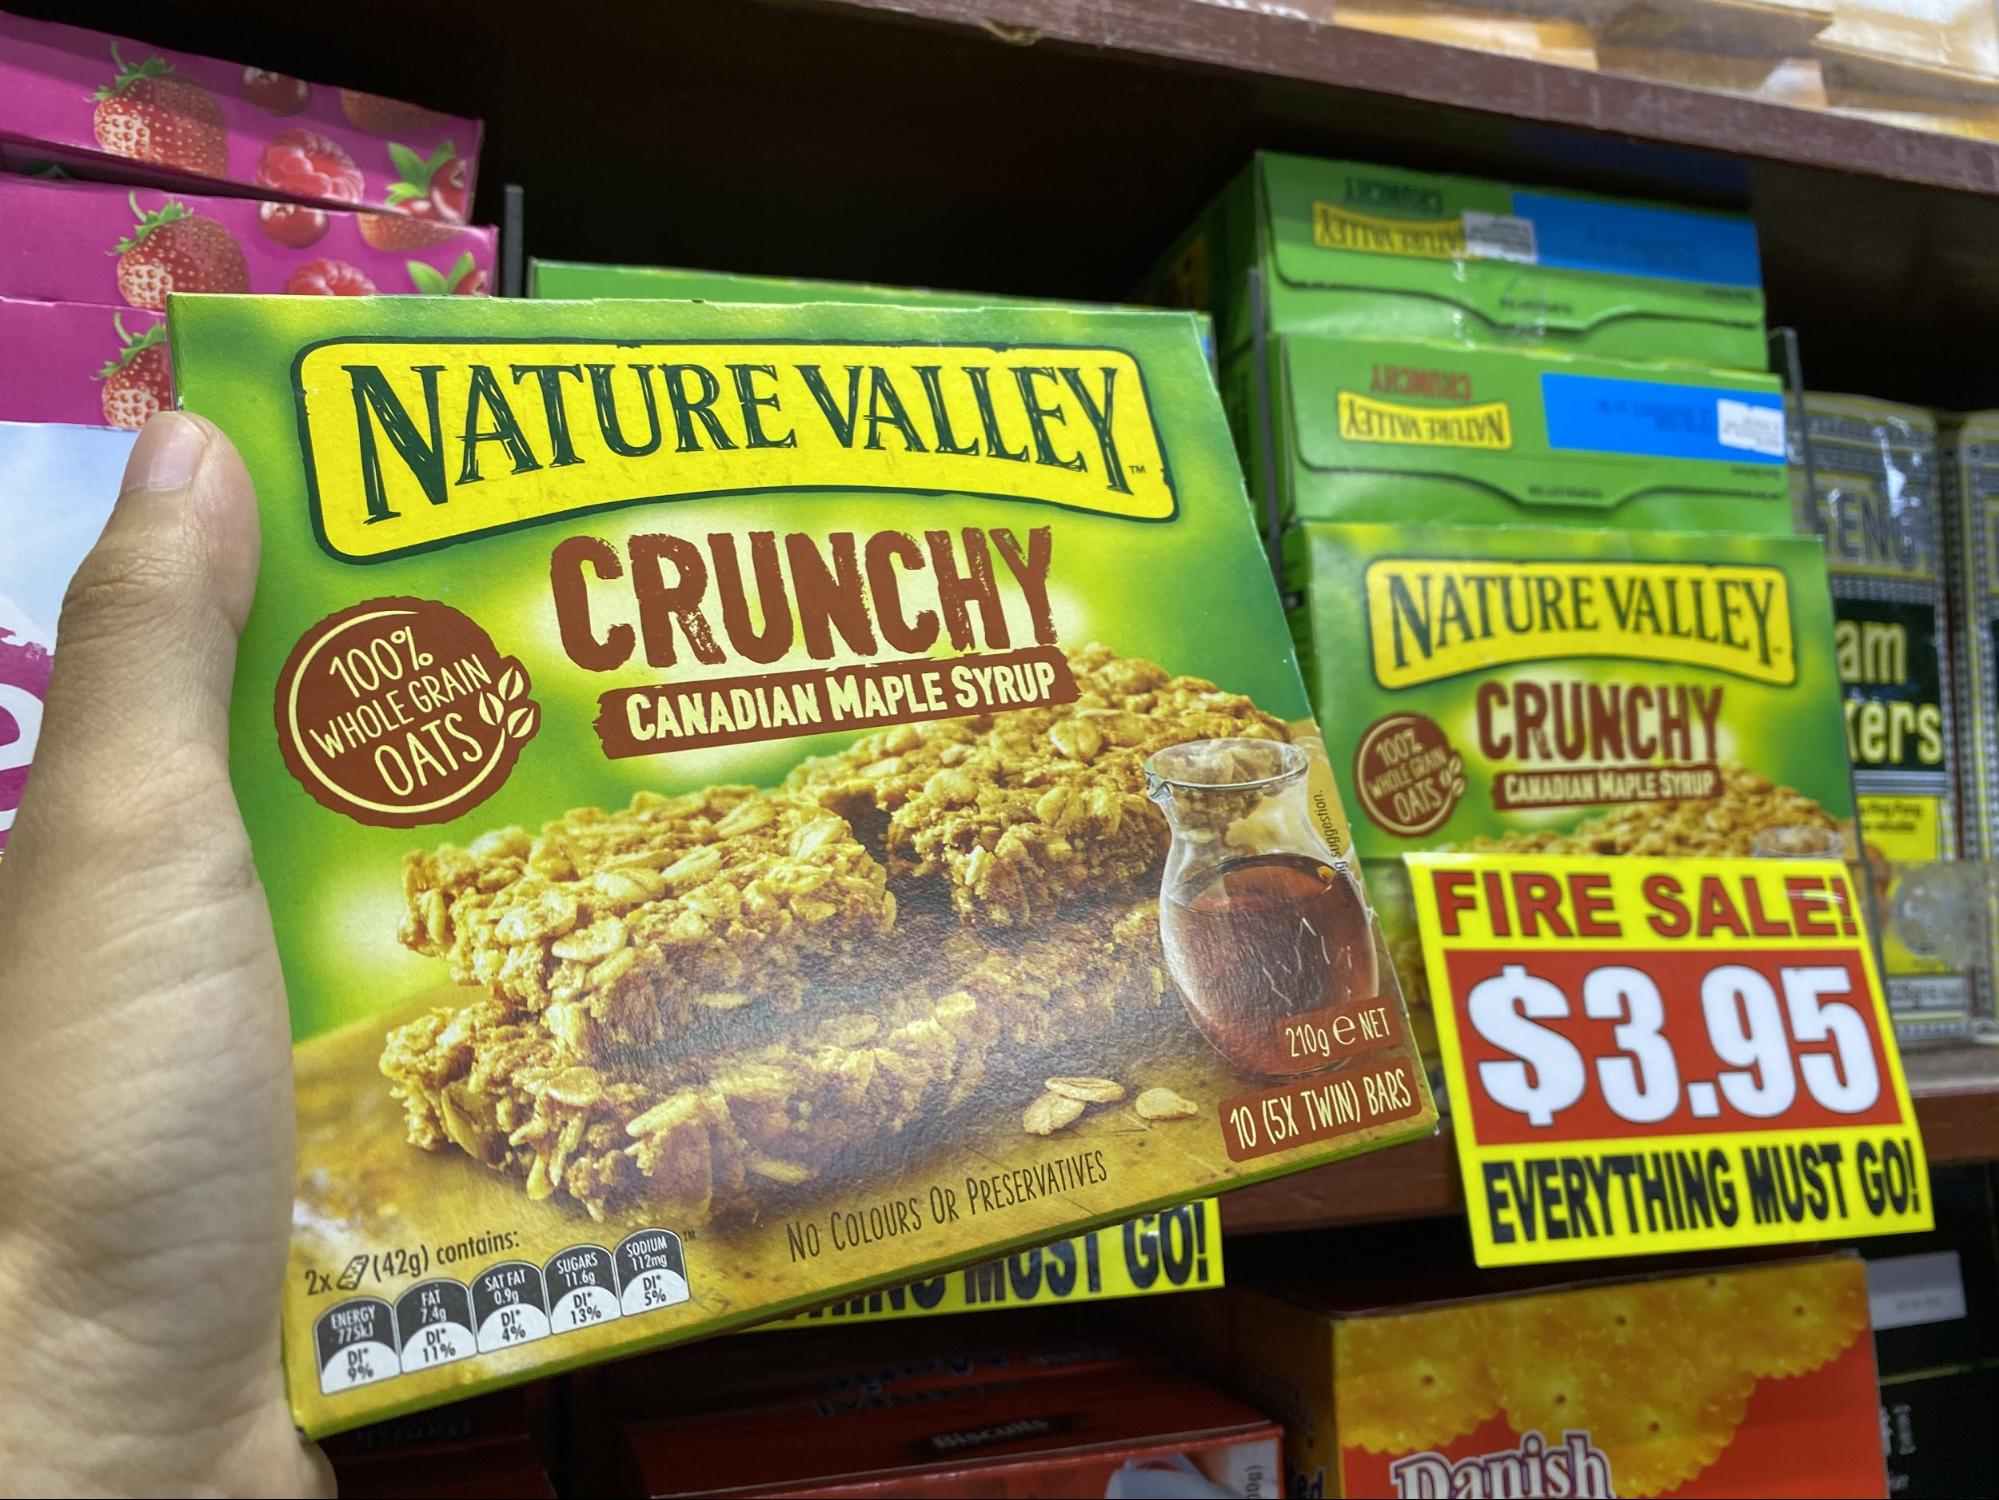 Nature Valley granola bars at the value dollar store in Singapore